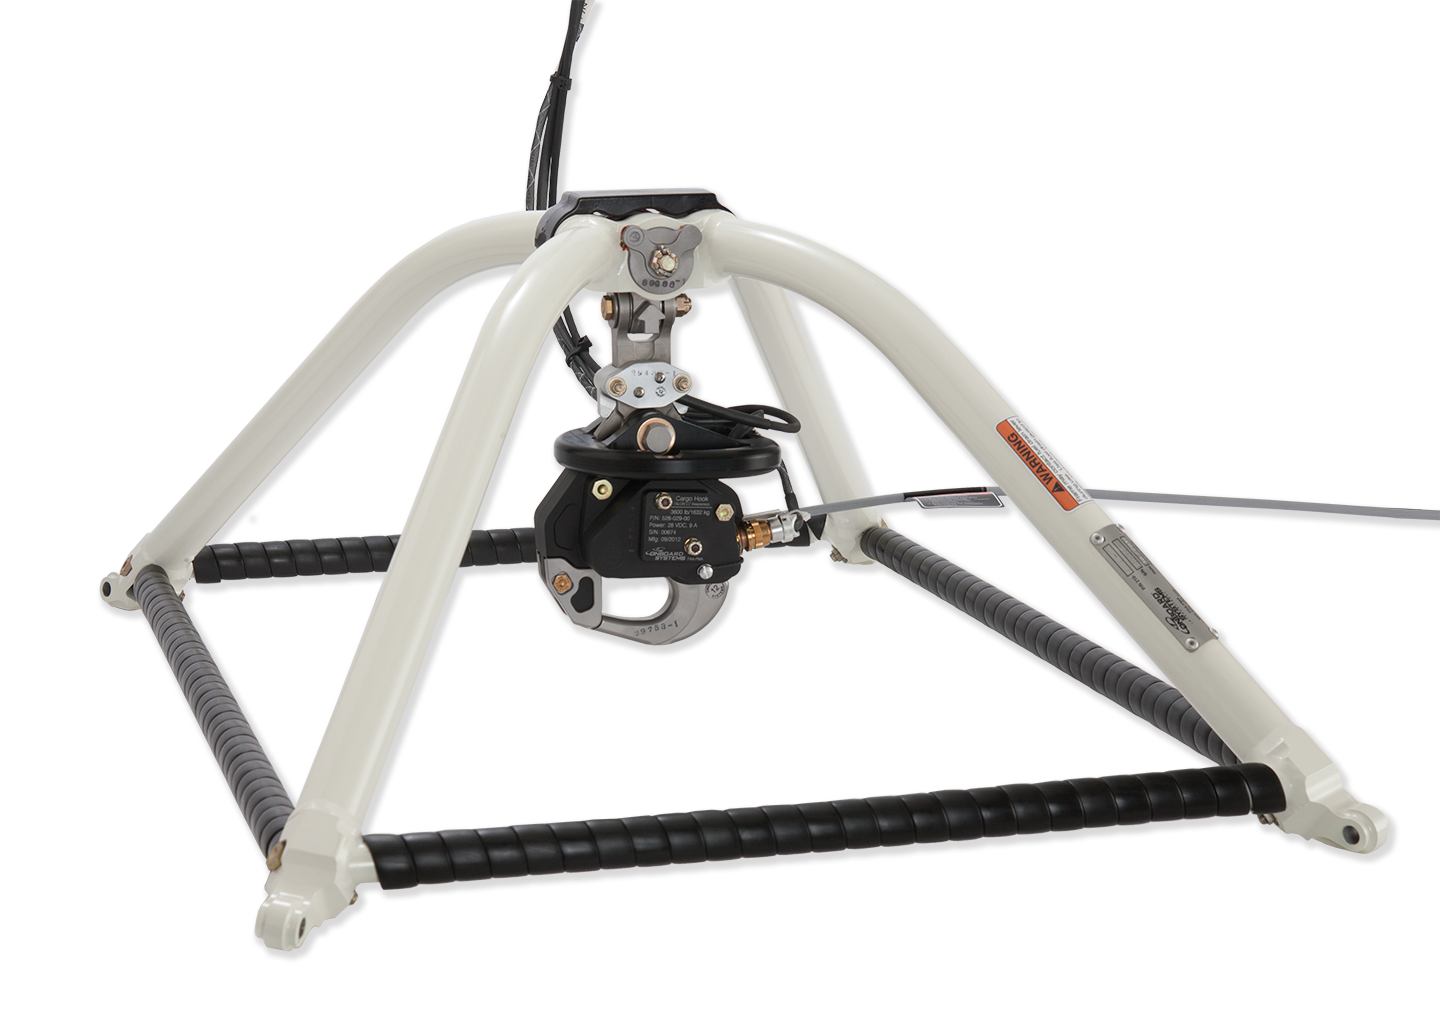 Find out more about our AS350/H125 Retrofit Cargo Hook Kit